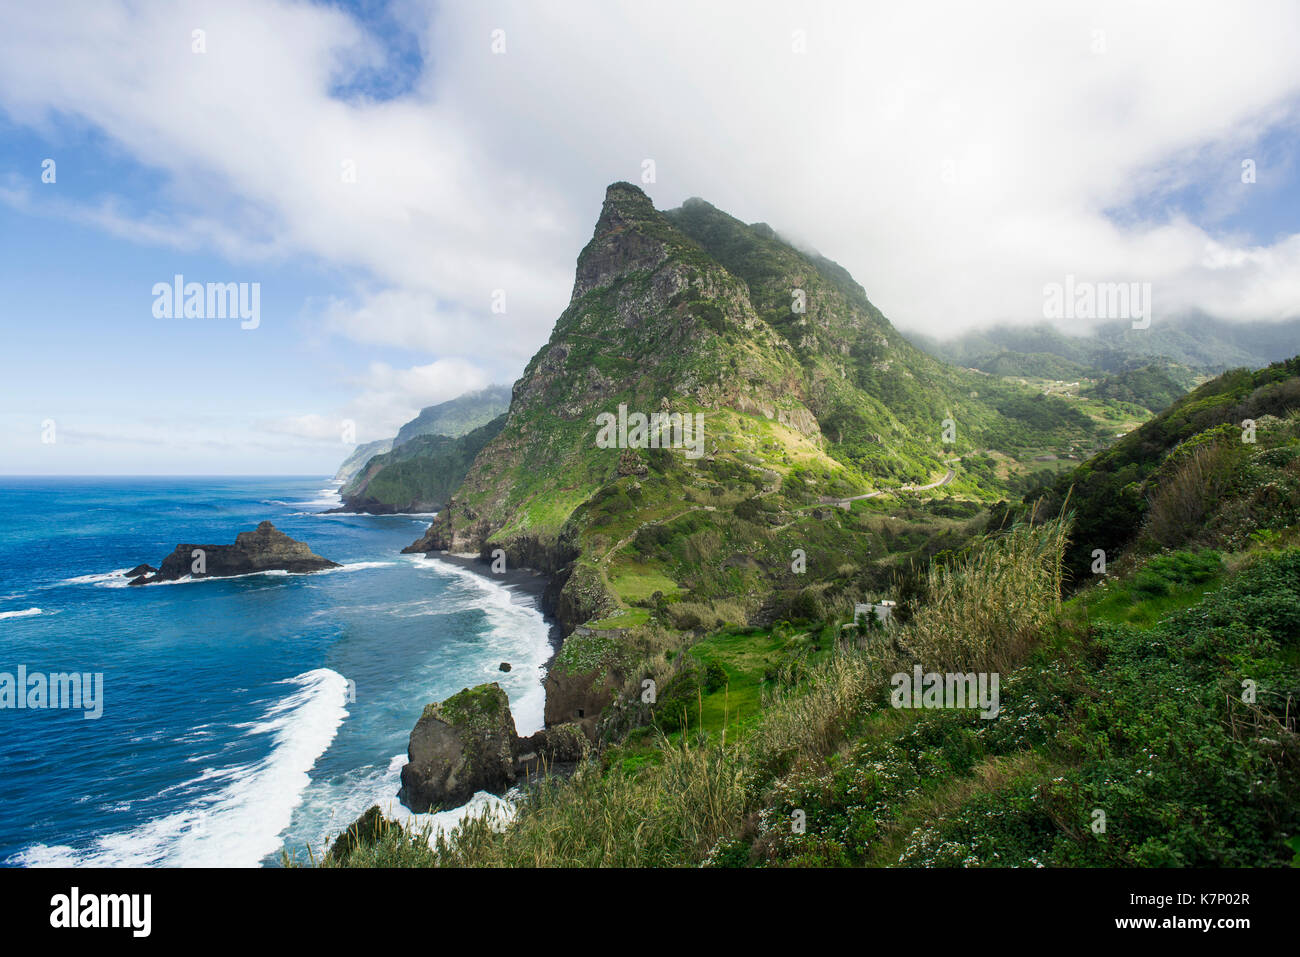 Viewpoint of Boaventura on the north coast of Madeira Island, Portugal - Stock Image